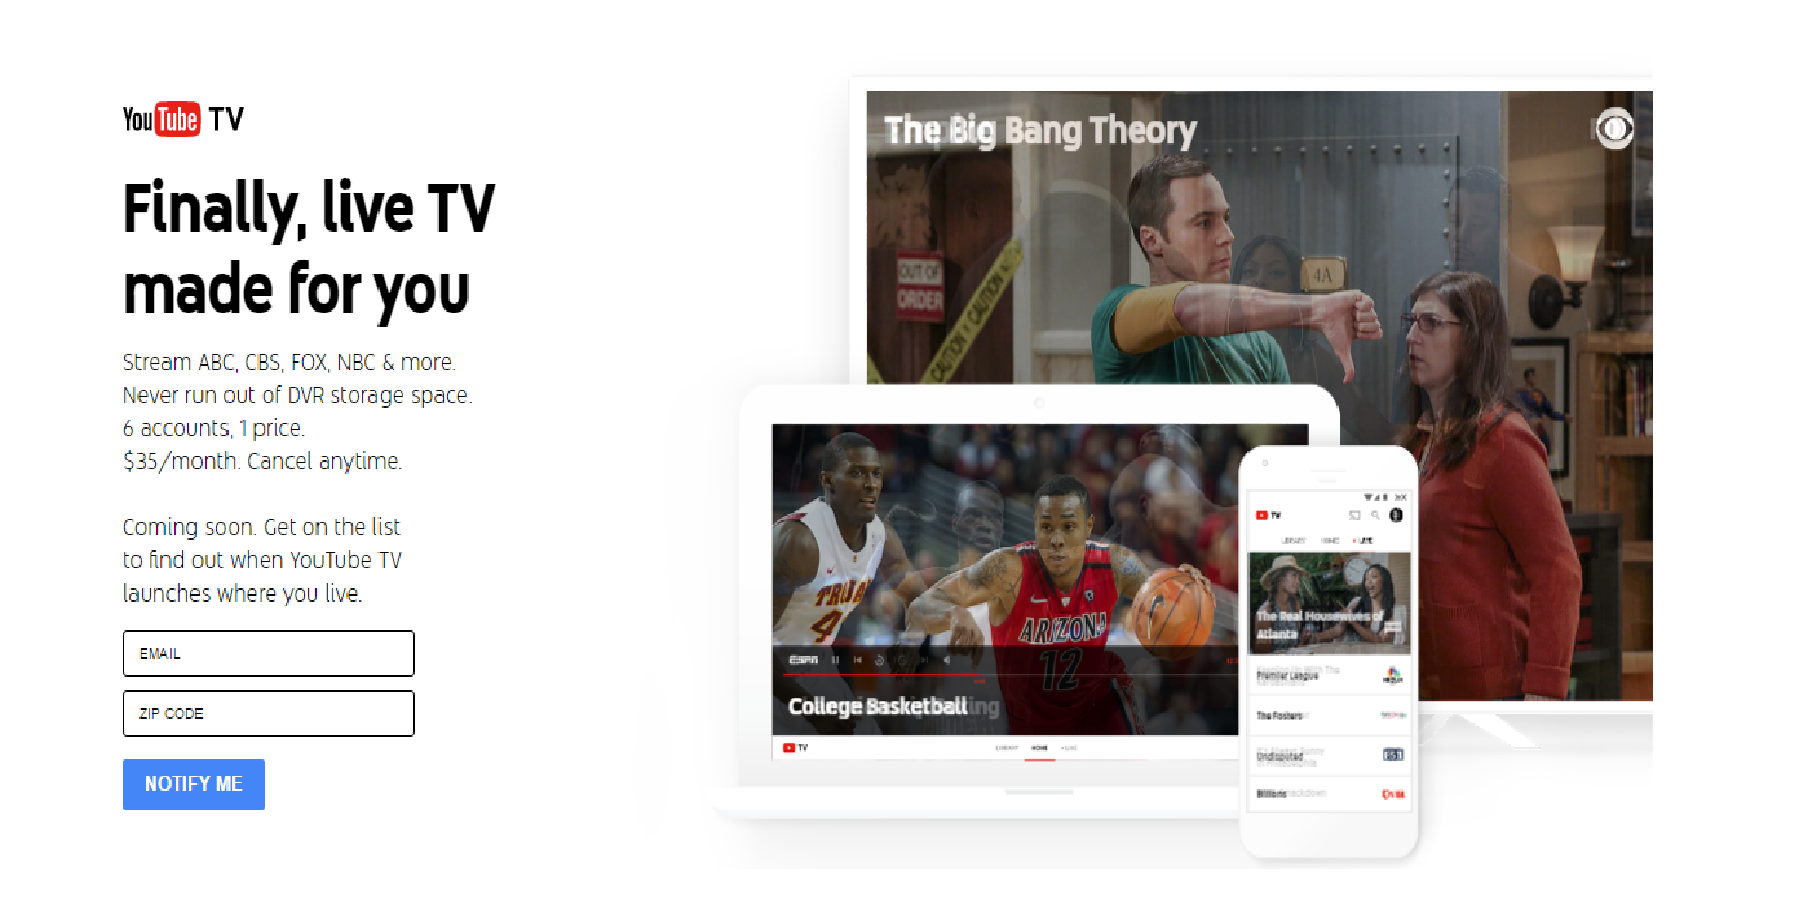 YouTube TV Launches to Compete Directly With Cable TV